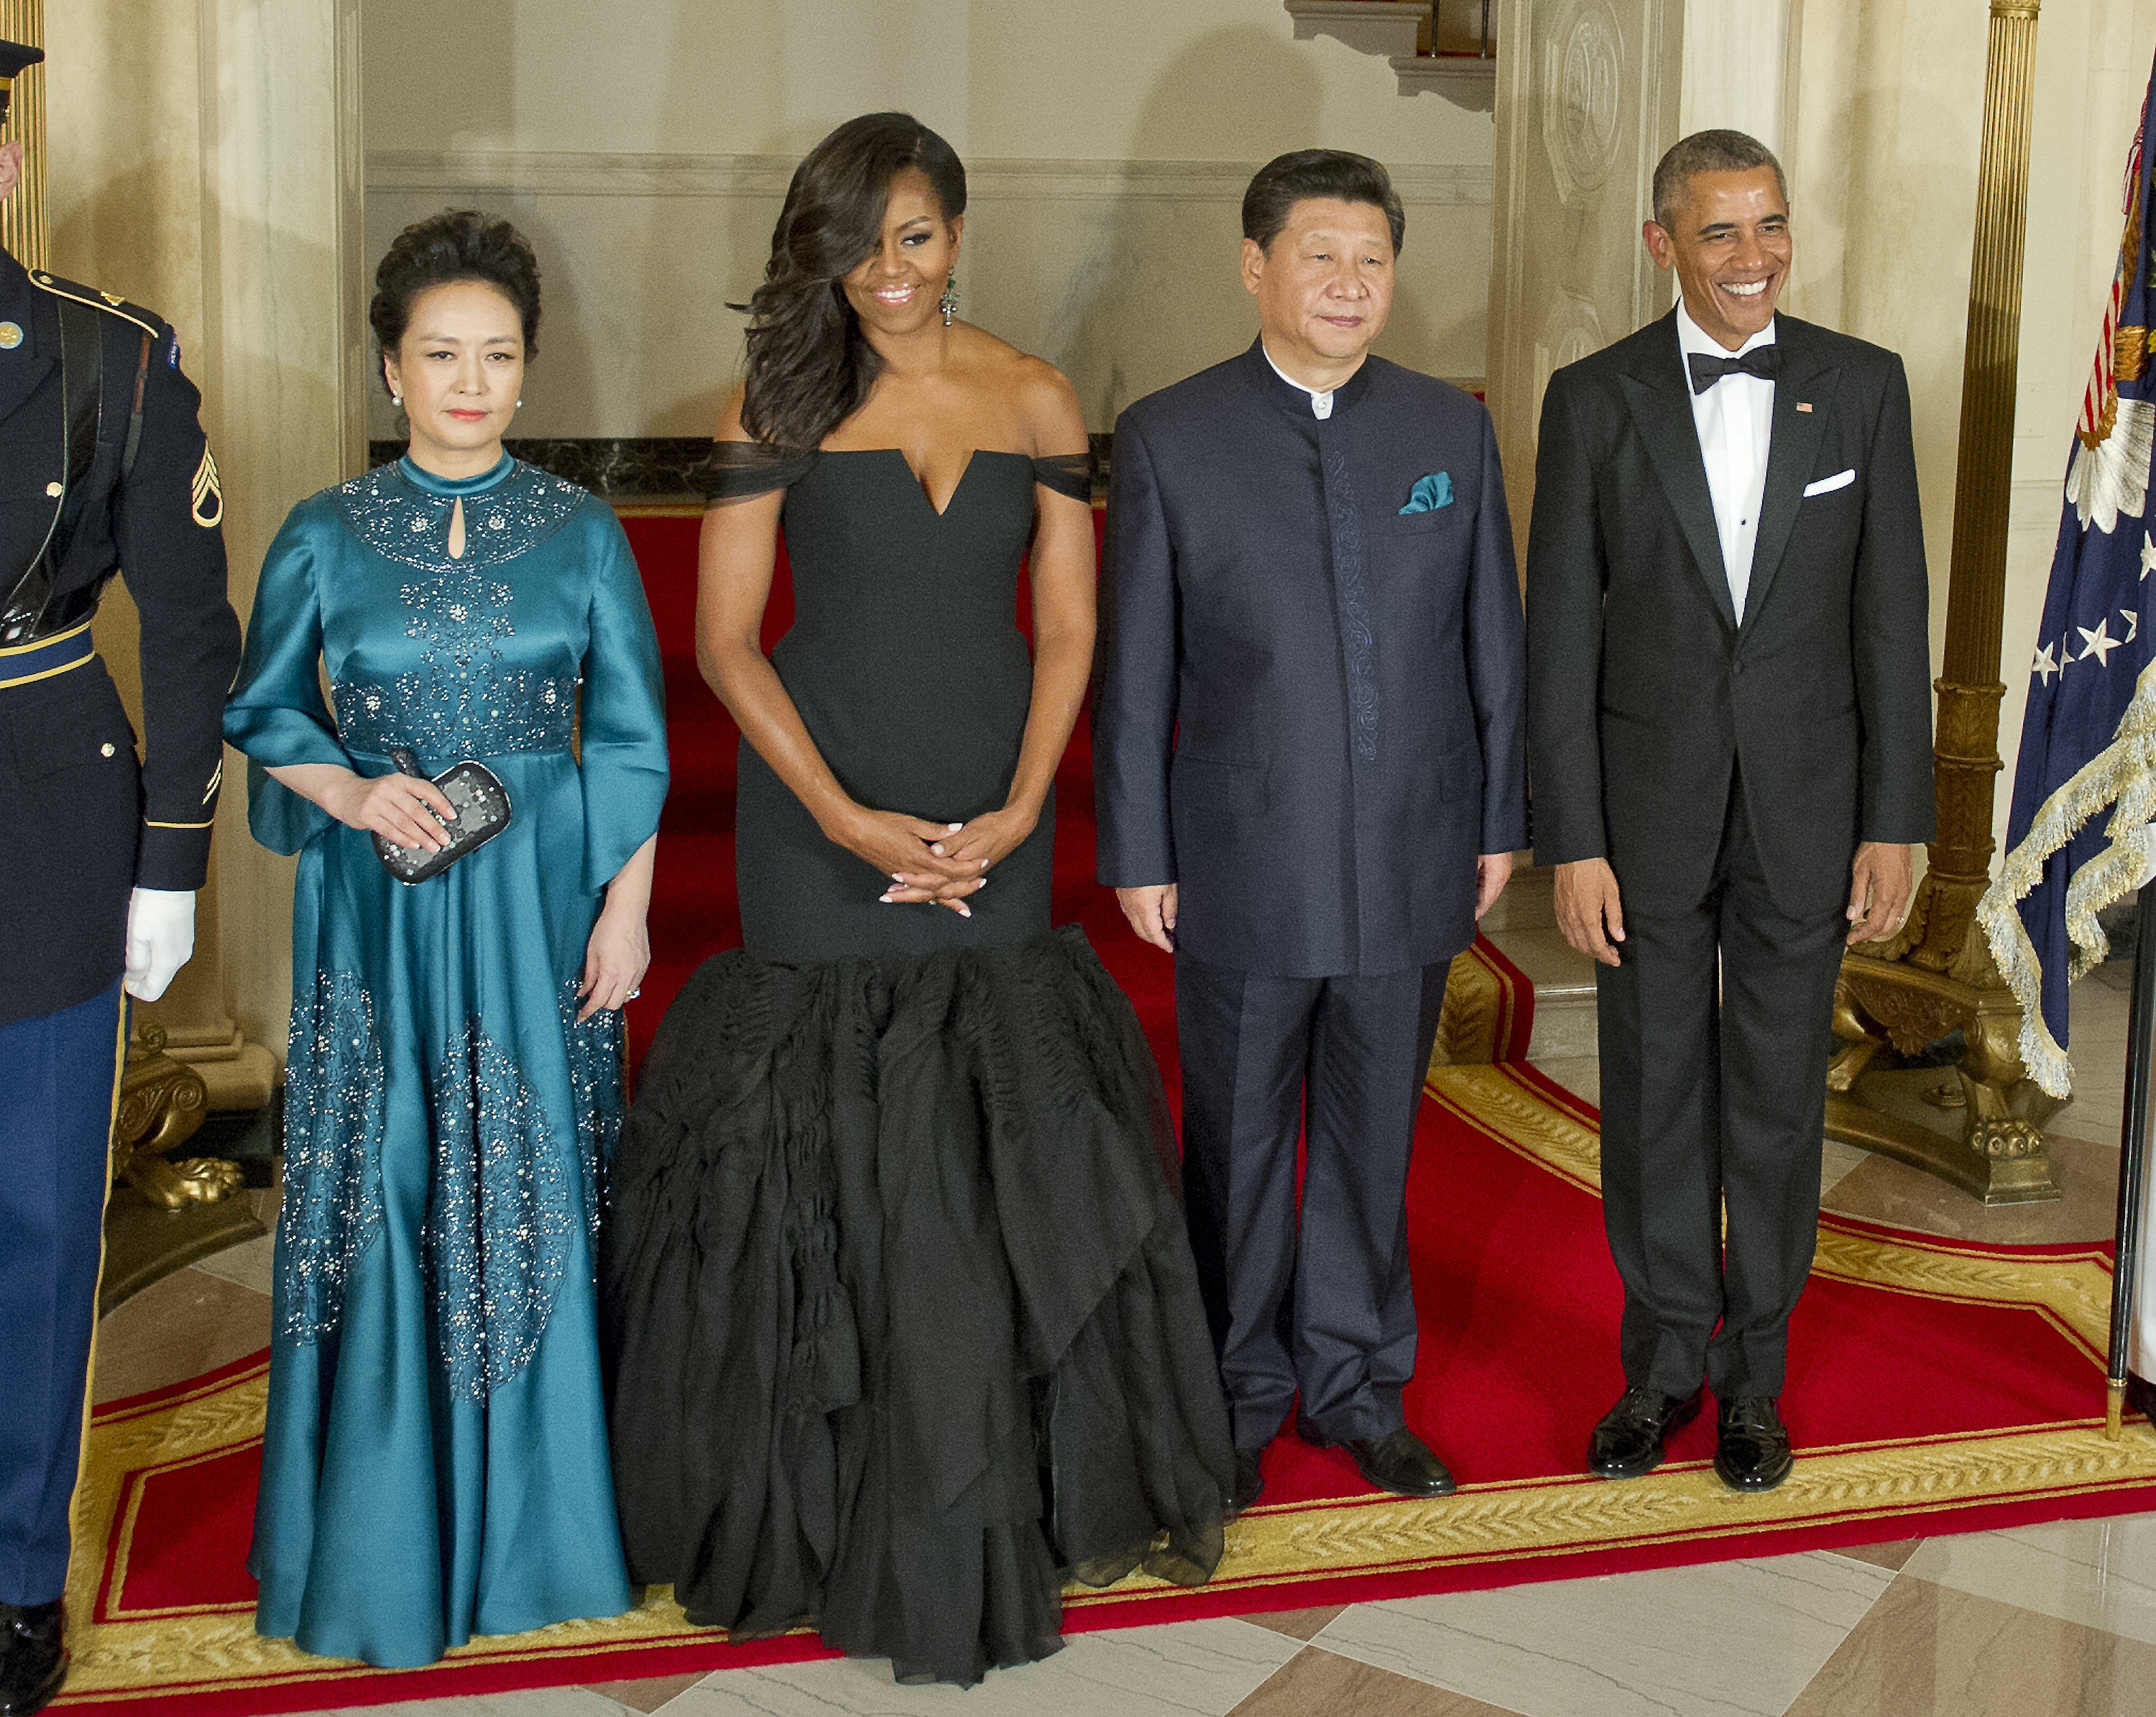 Fug or Fab: Michelle Obama in Vera Wang